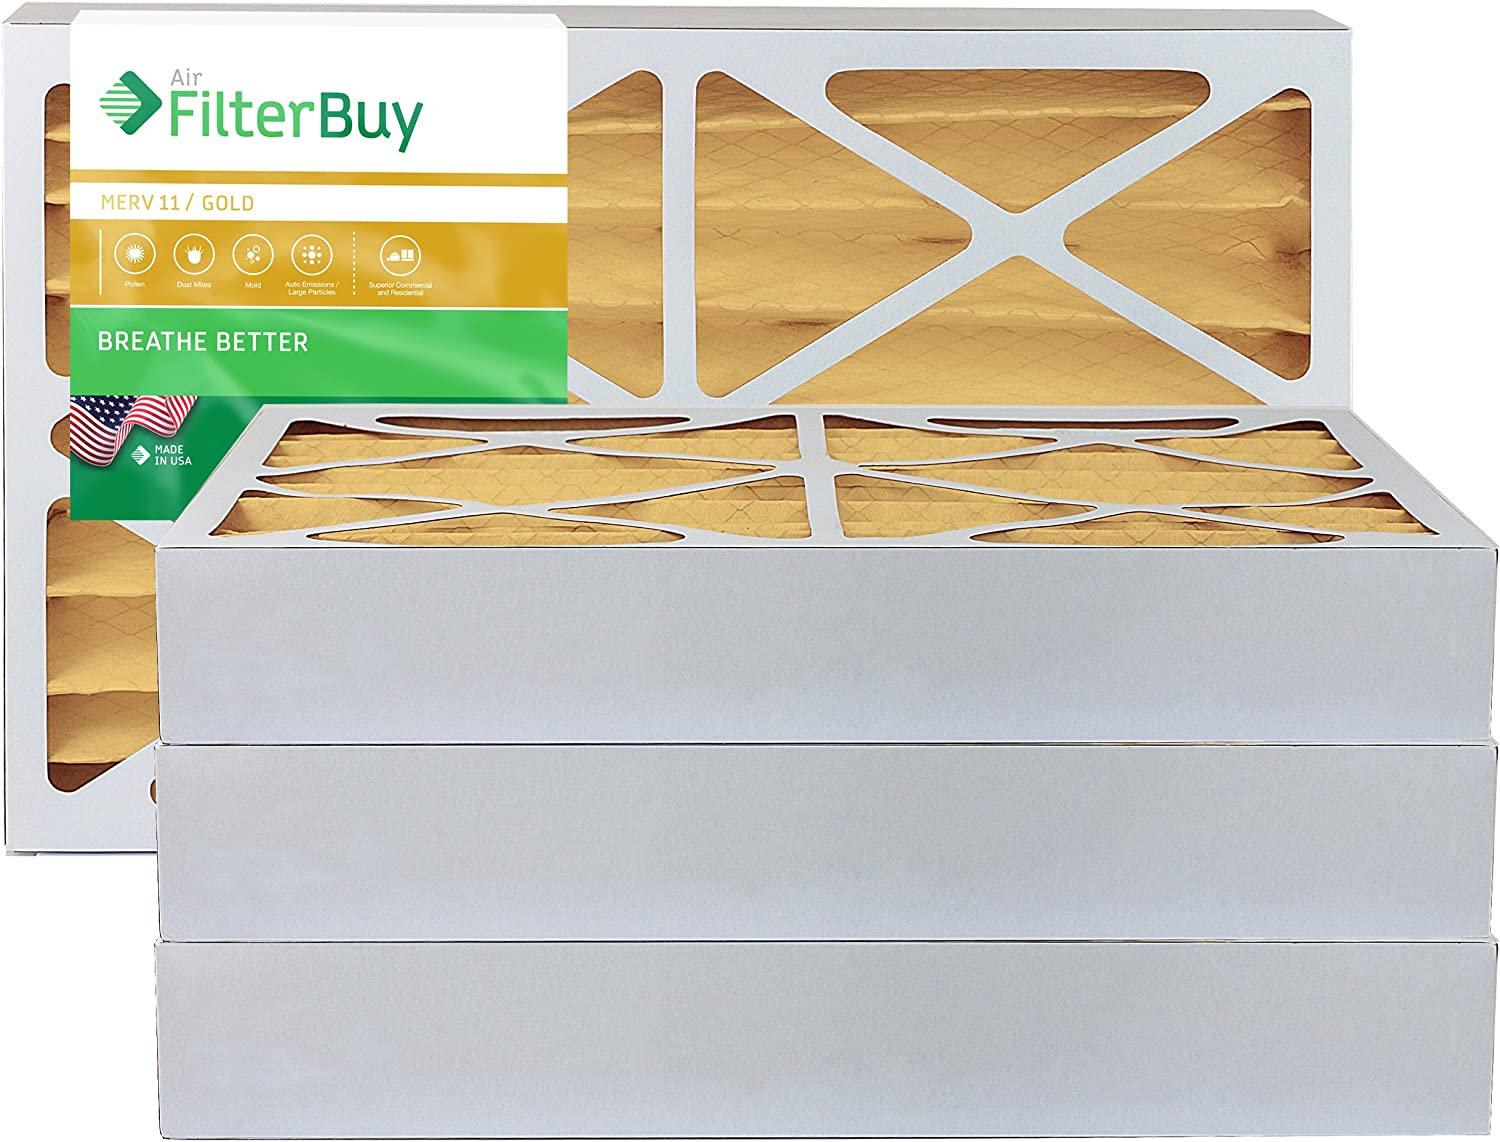 FilterBuy 20x20x4 MERV 11 Pleated AC Furnace Air Filter, (Pack of 4 Filters), 20x20x4 – Gold